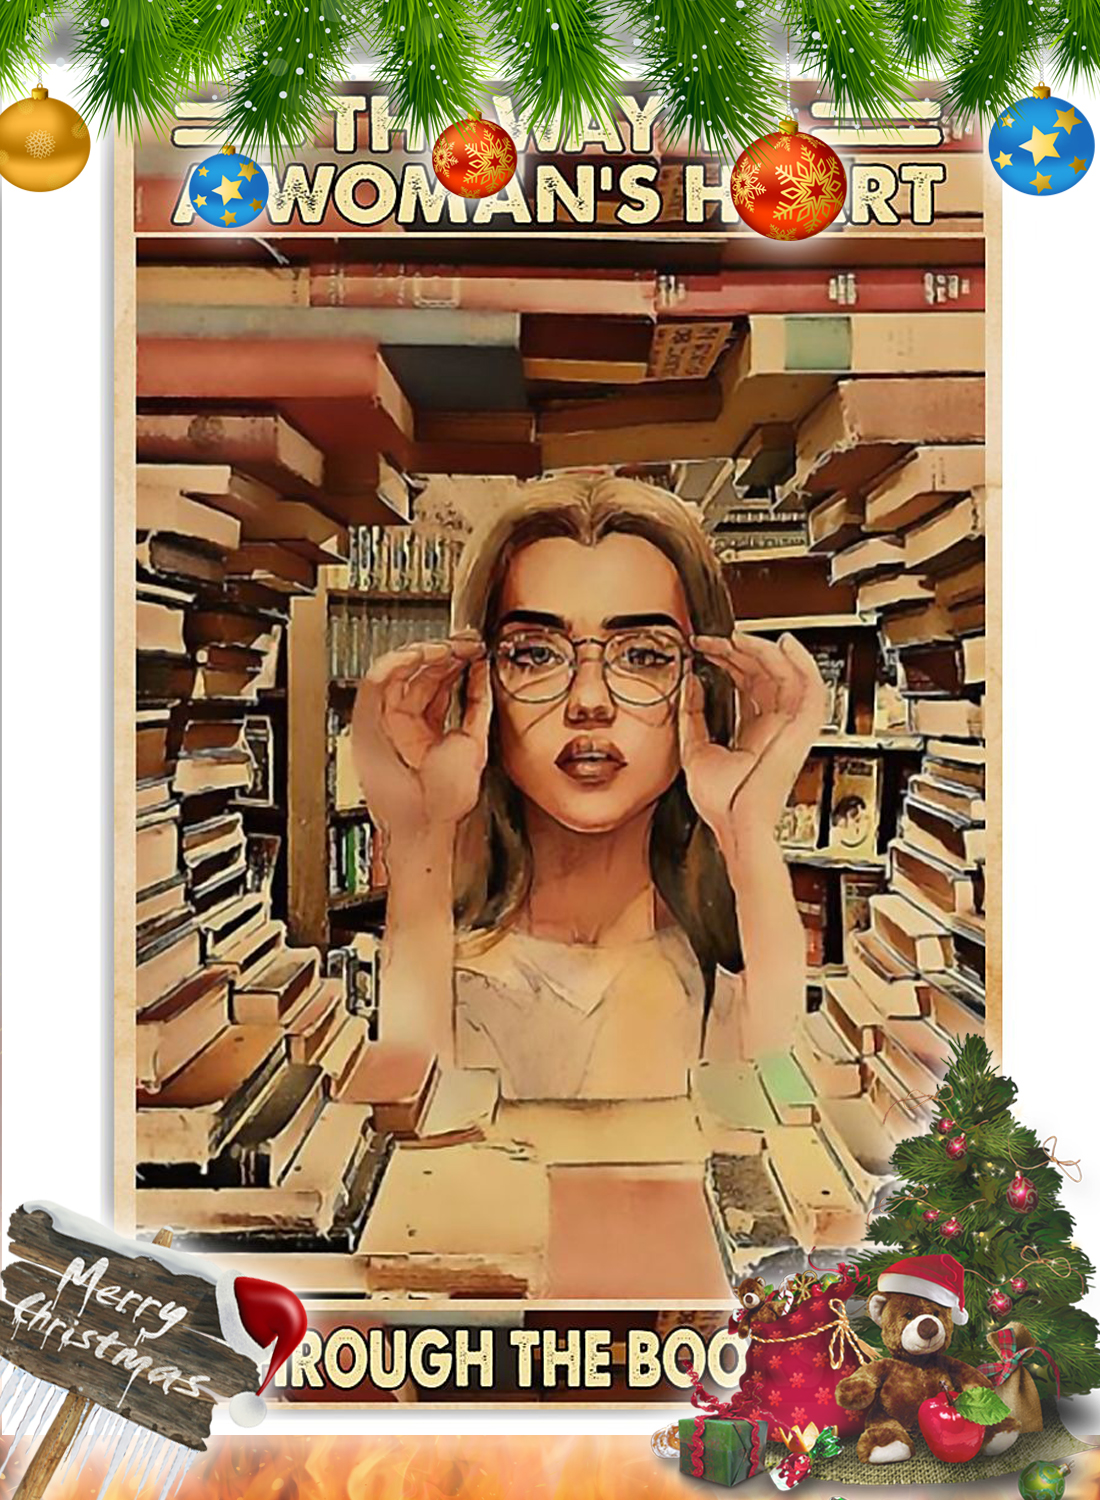 The way to a woman's heart is through the bookstore poster 2